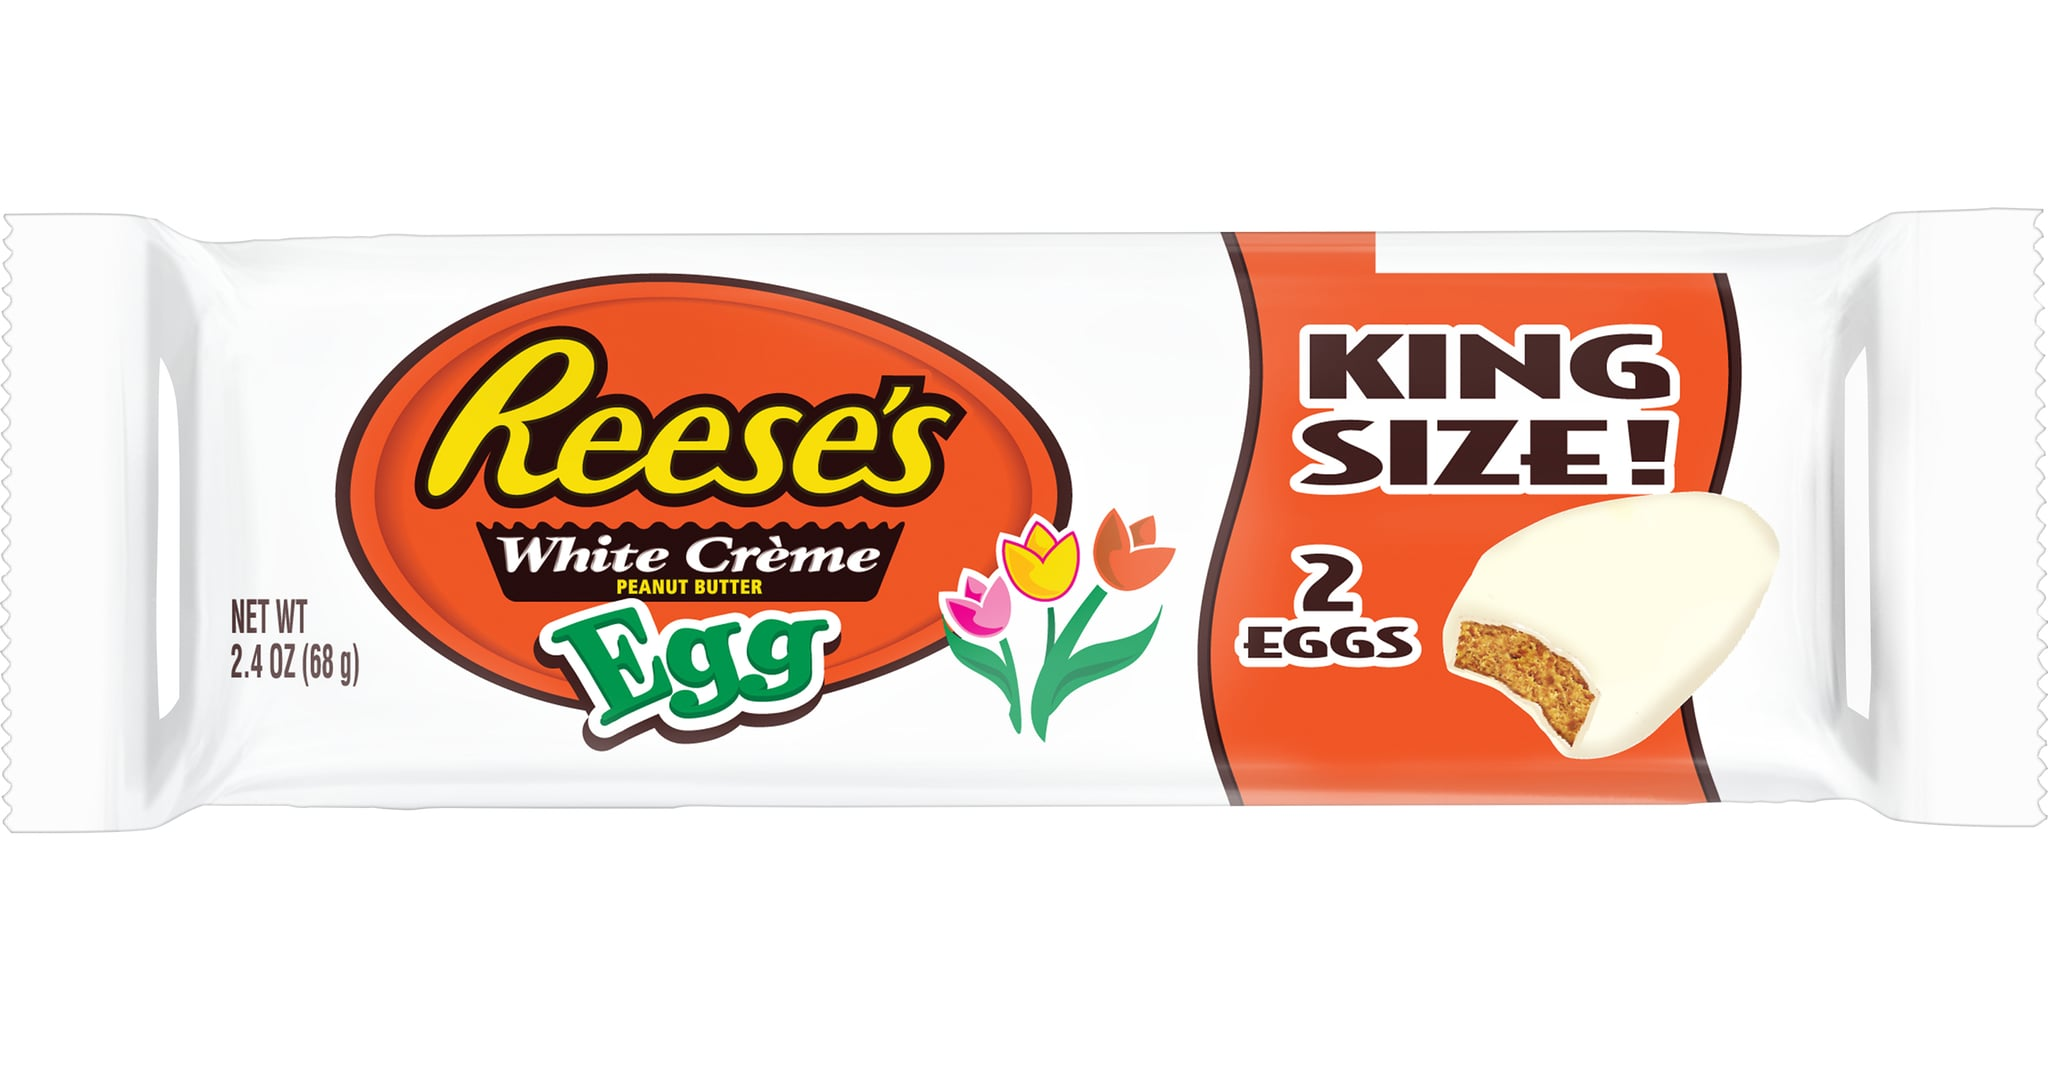 Image result for Reese's White Peanut Butter Eggs King Size